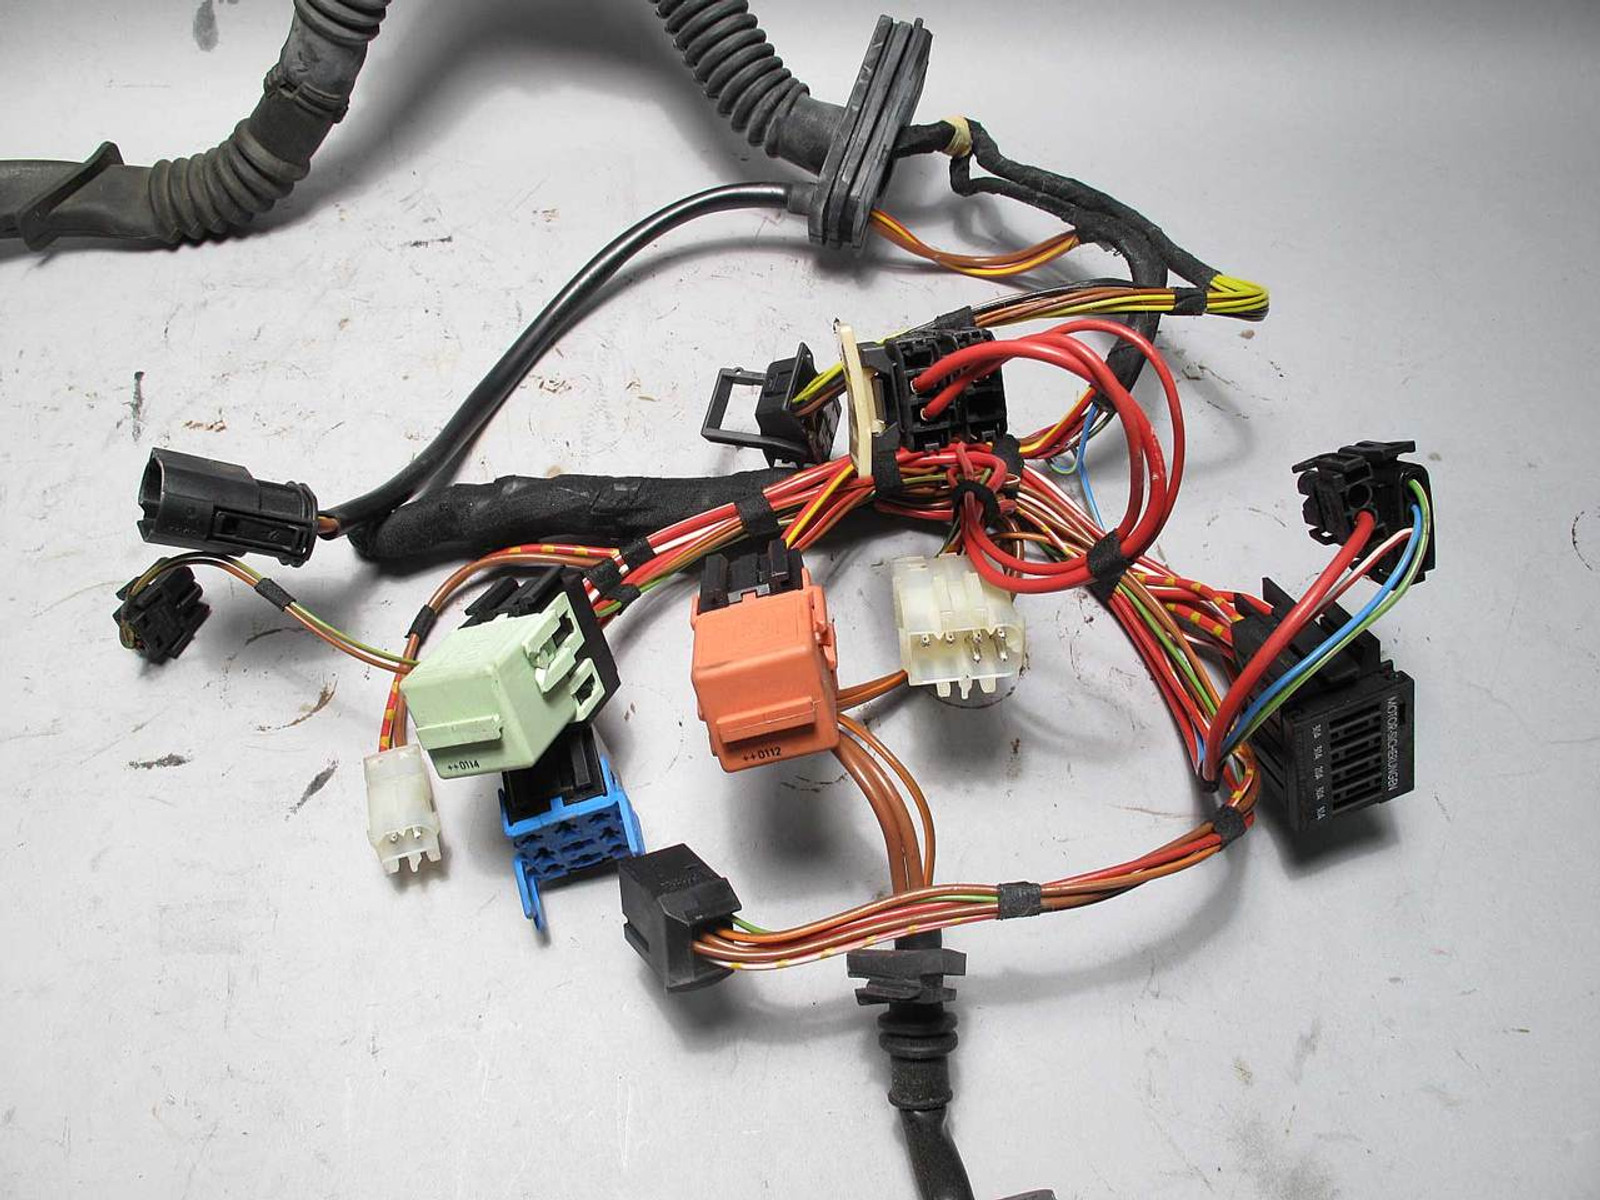 Bmw Z3 Roadster Coupe M54 5 Speed Manual Trans Wiring Harness 2001